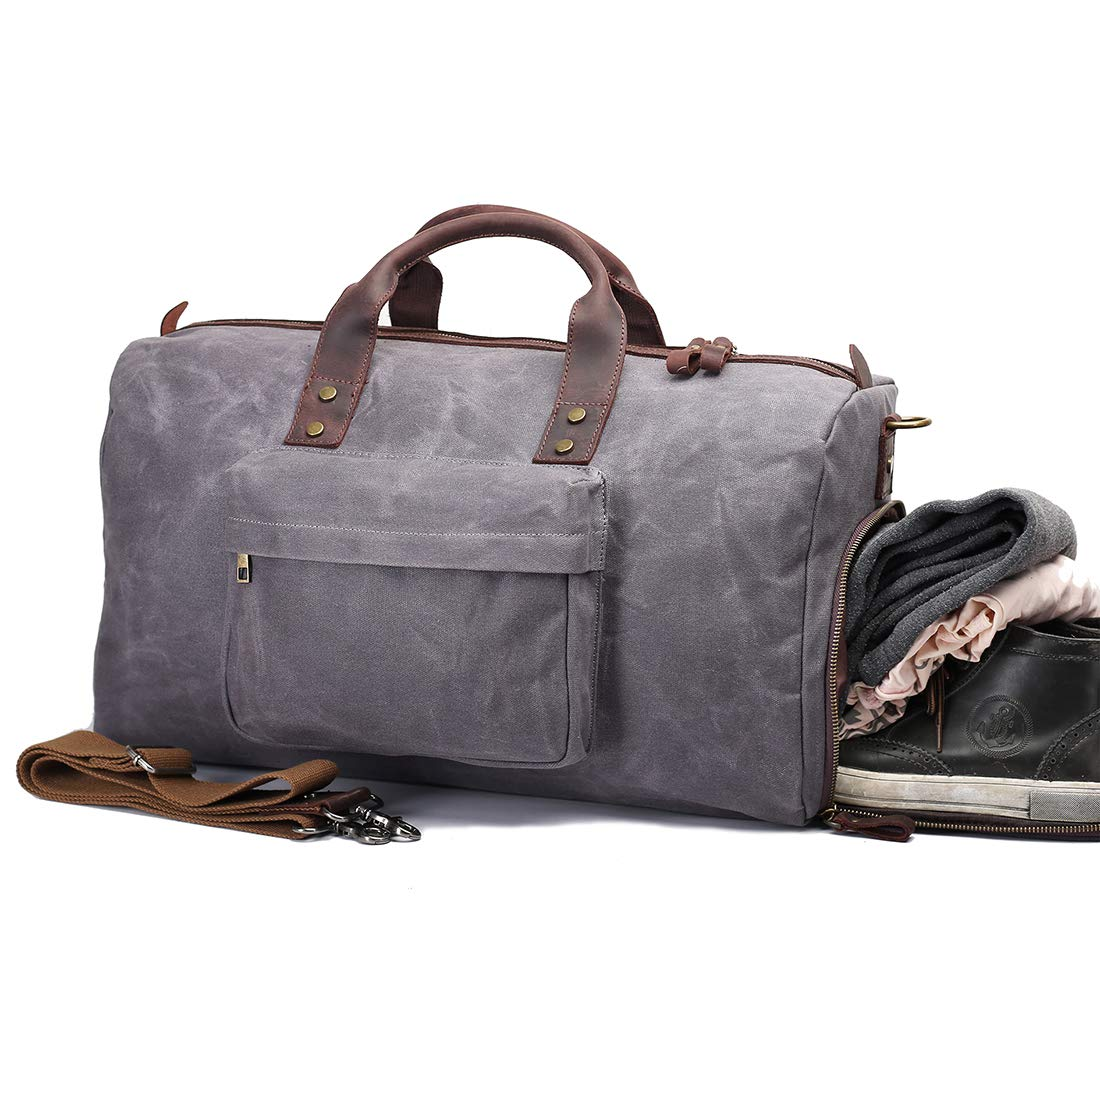 UNISACK Waterproof Waxed Canvas Leather Trim Travel Tote Duffel Handbag Weekend Bag Carry On with Shoe Pocket (Grey)